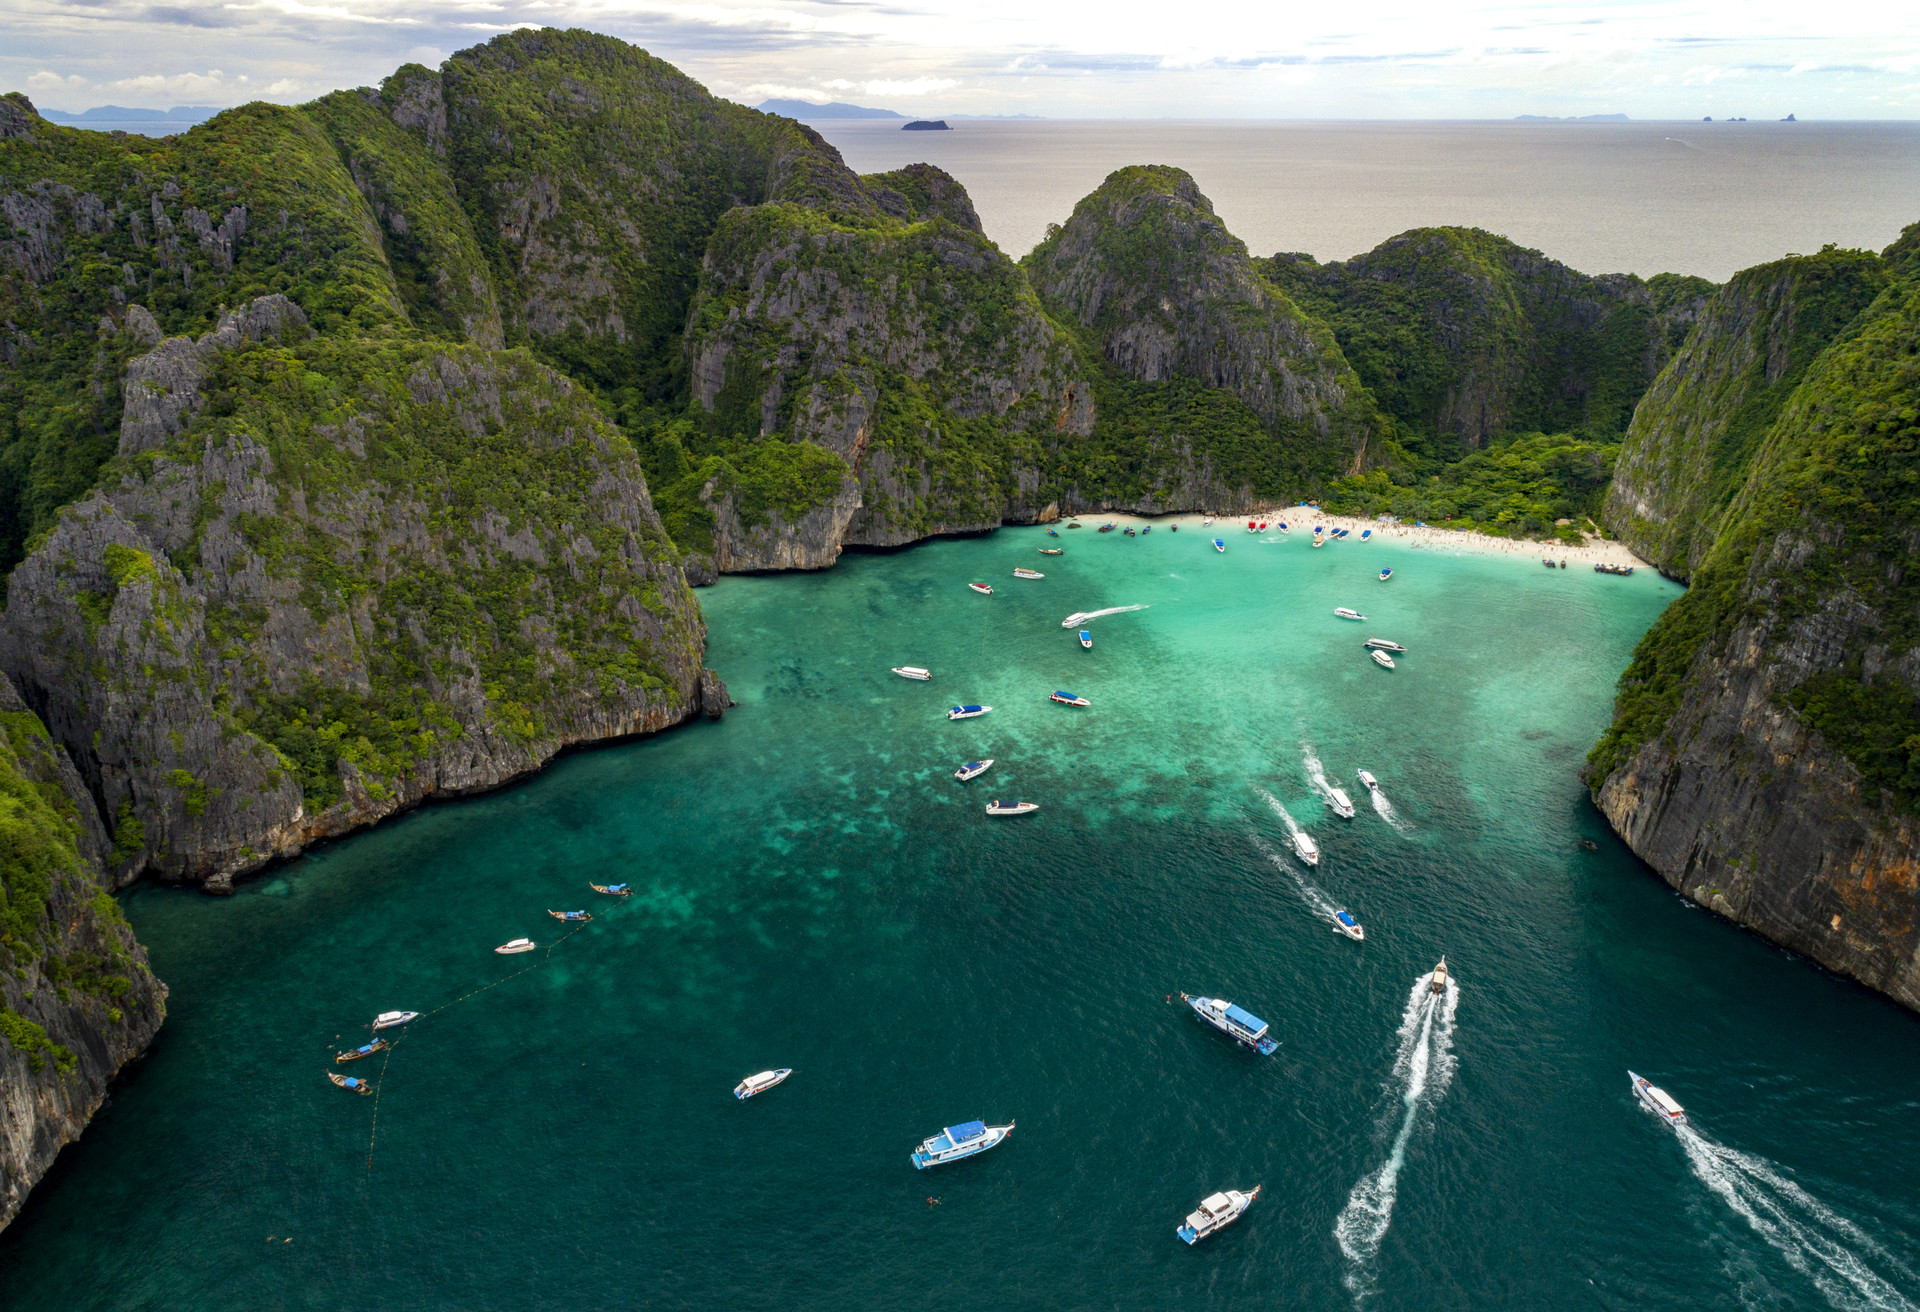 Singles Travel: Top 10 Destinations for Solo Travel